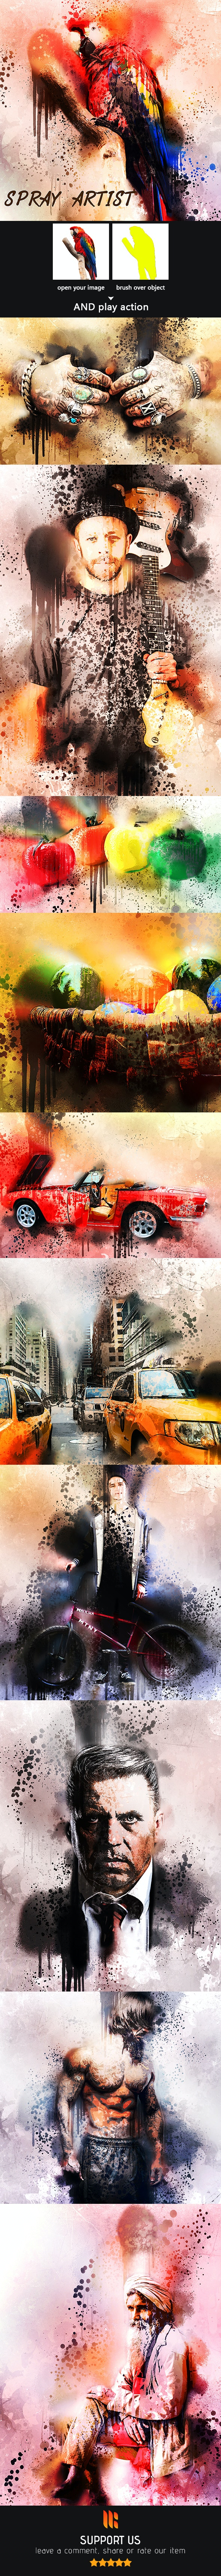 Spray Artist Photoshop Action - Photo Effects Actions